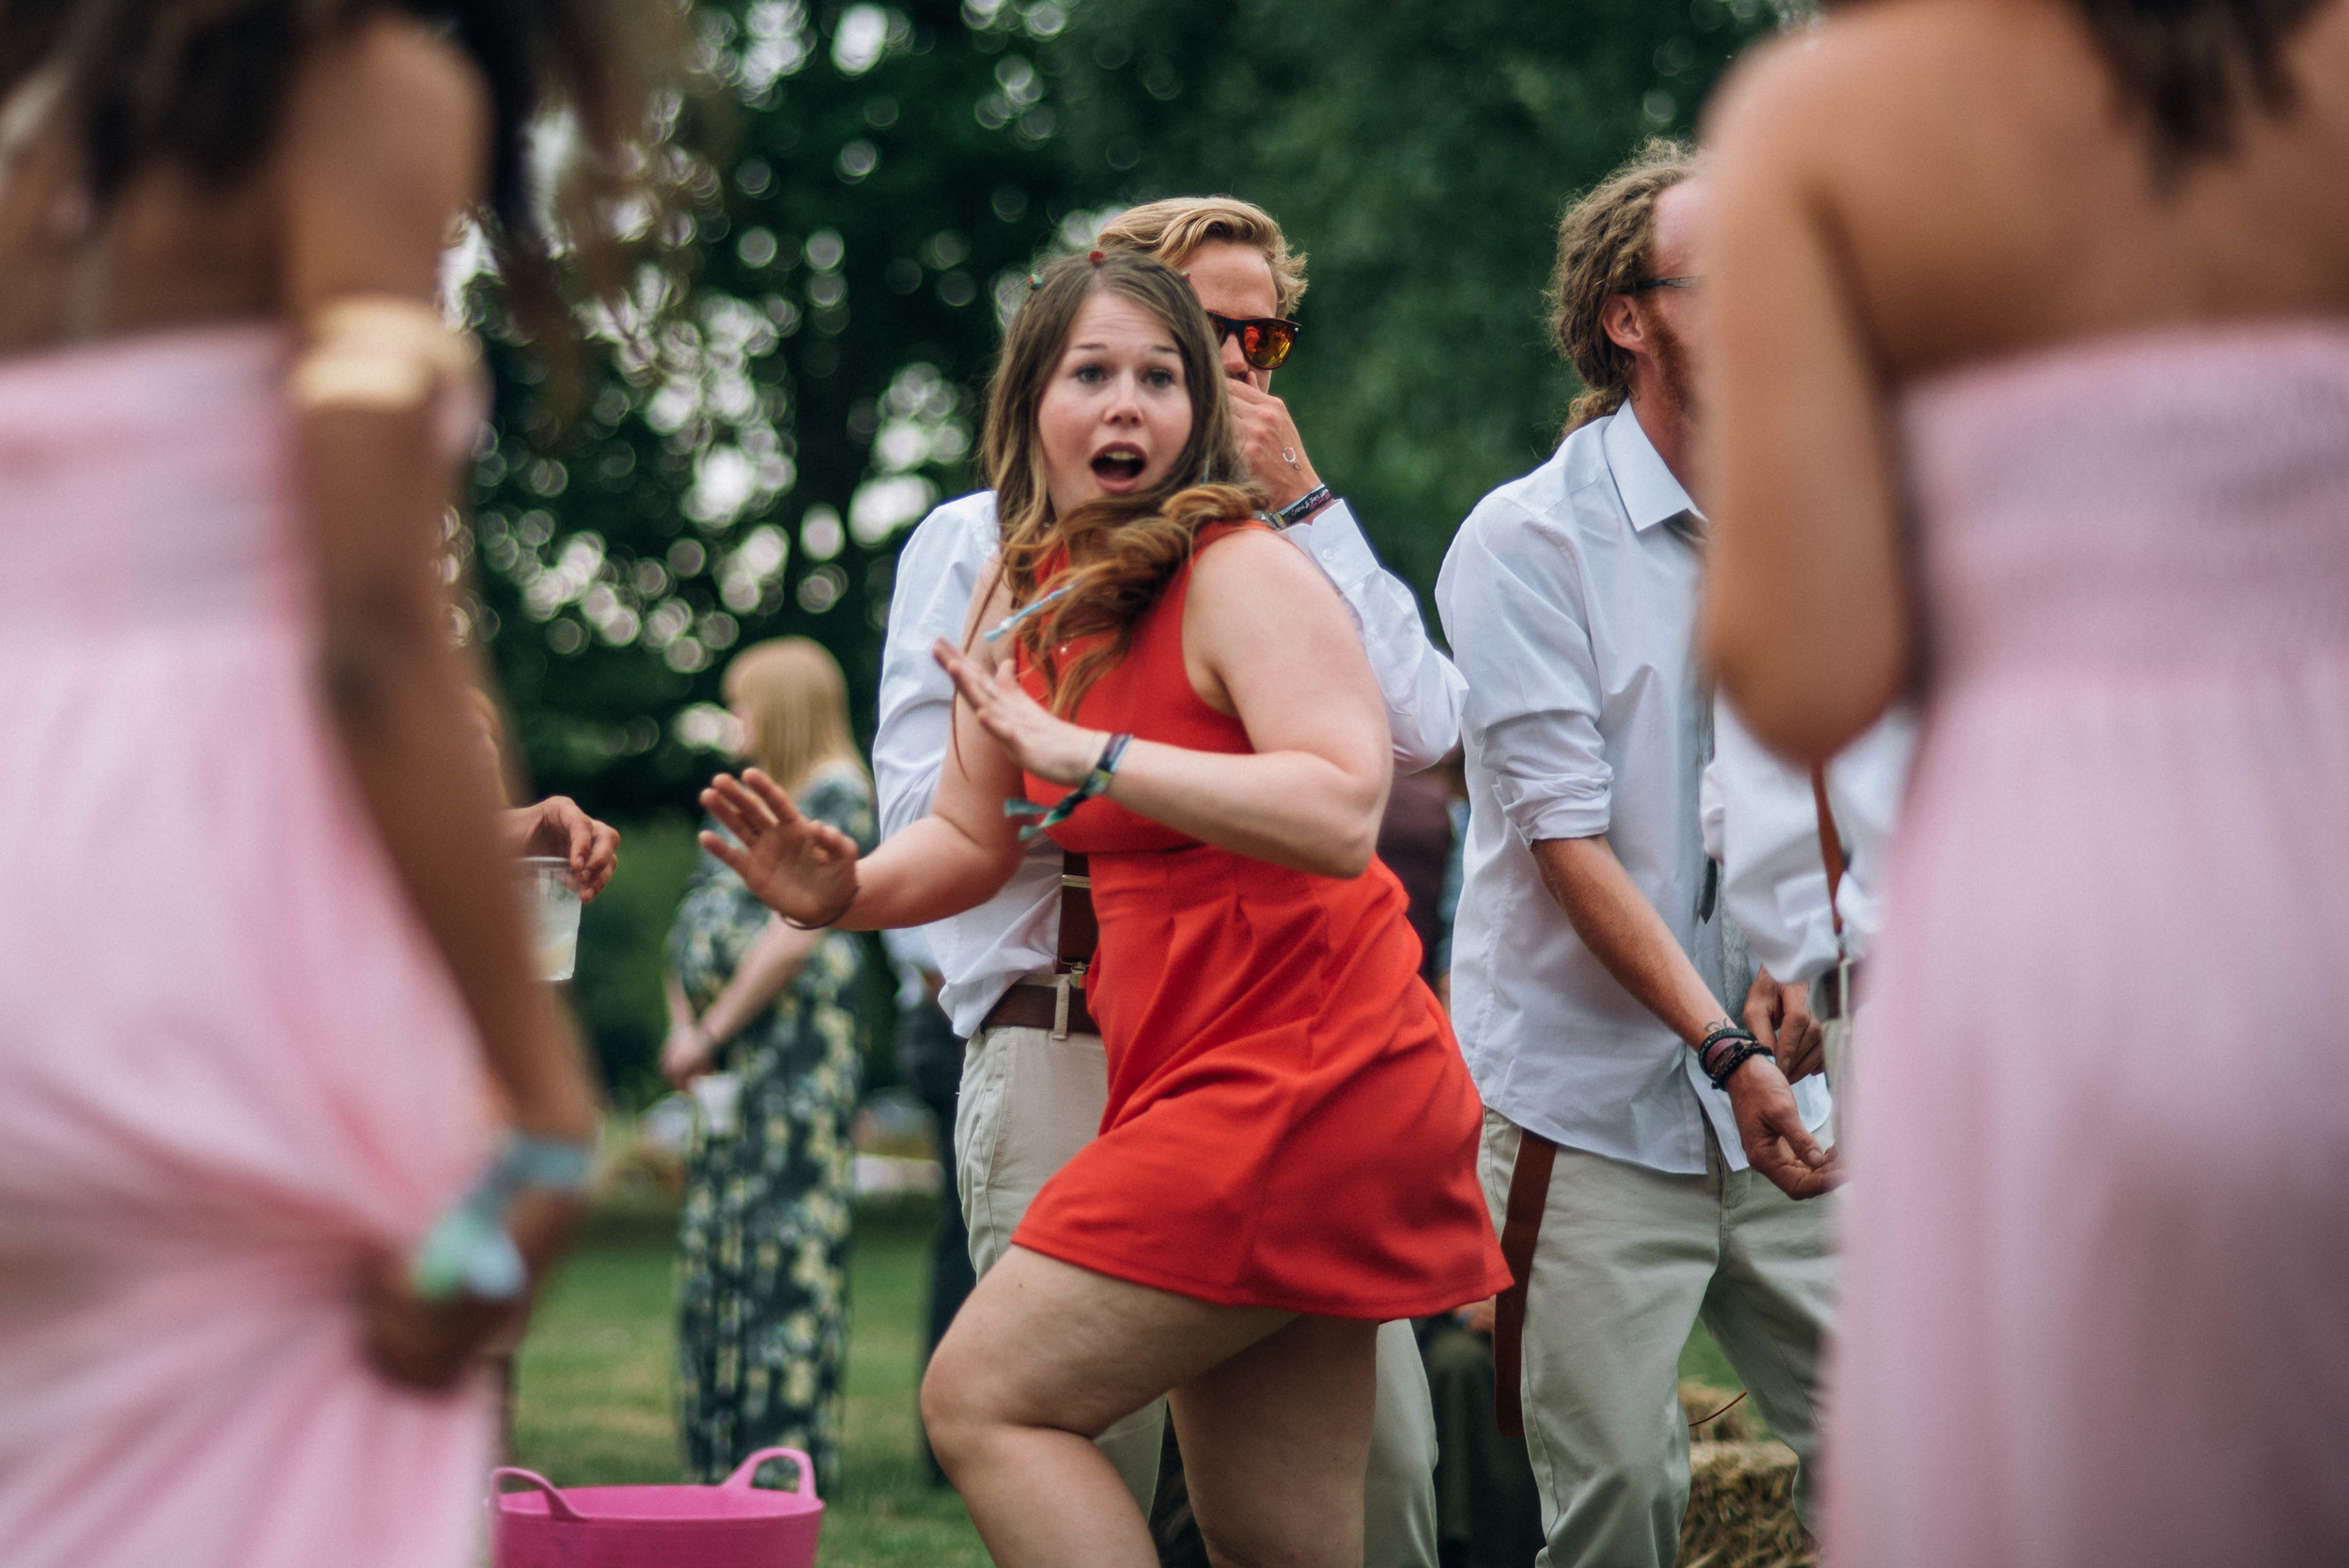 dancing guest at festival wedding essex uk documentary wedding photographer